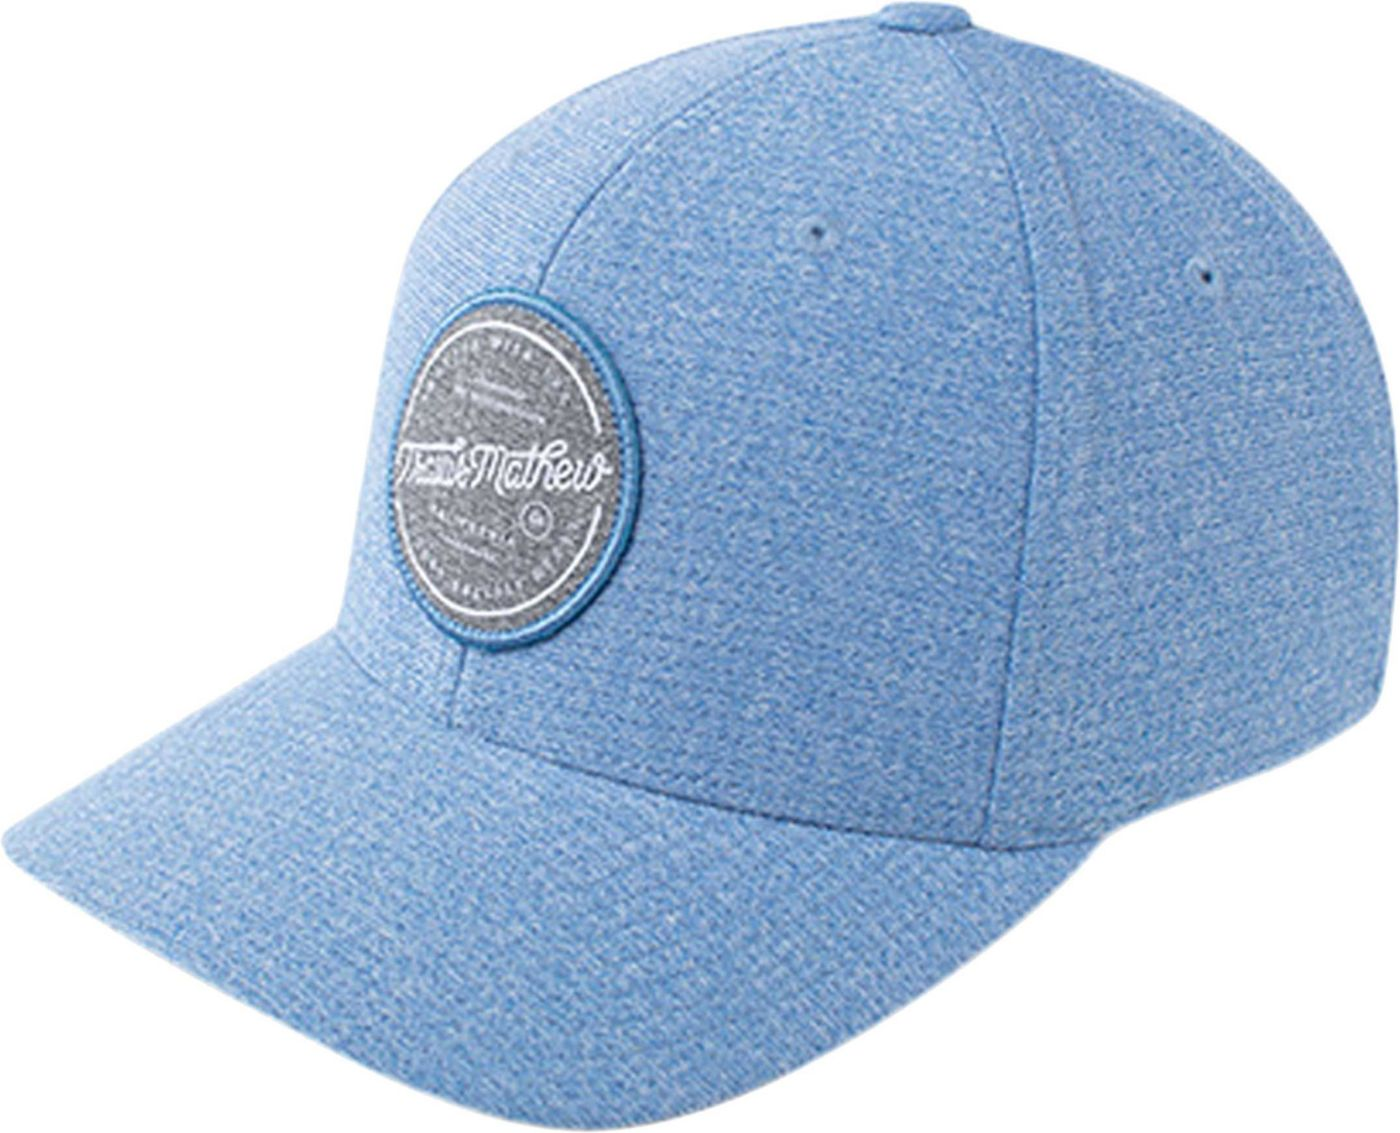 TravisMathew Men's What Kind Of Name Is That Golf Hat